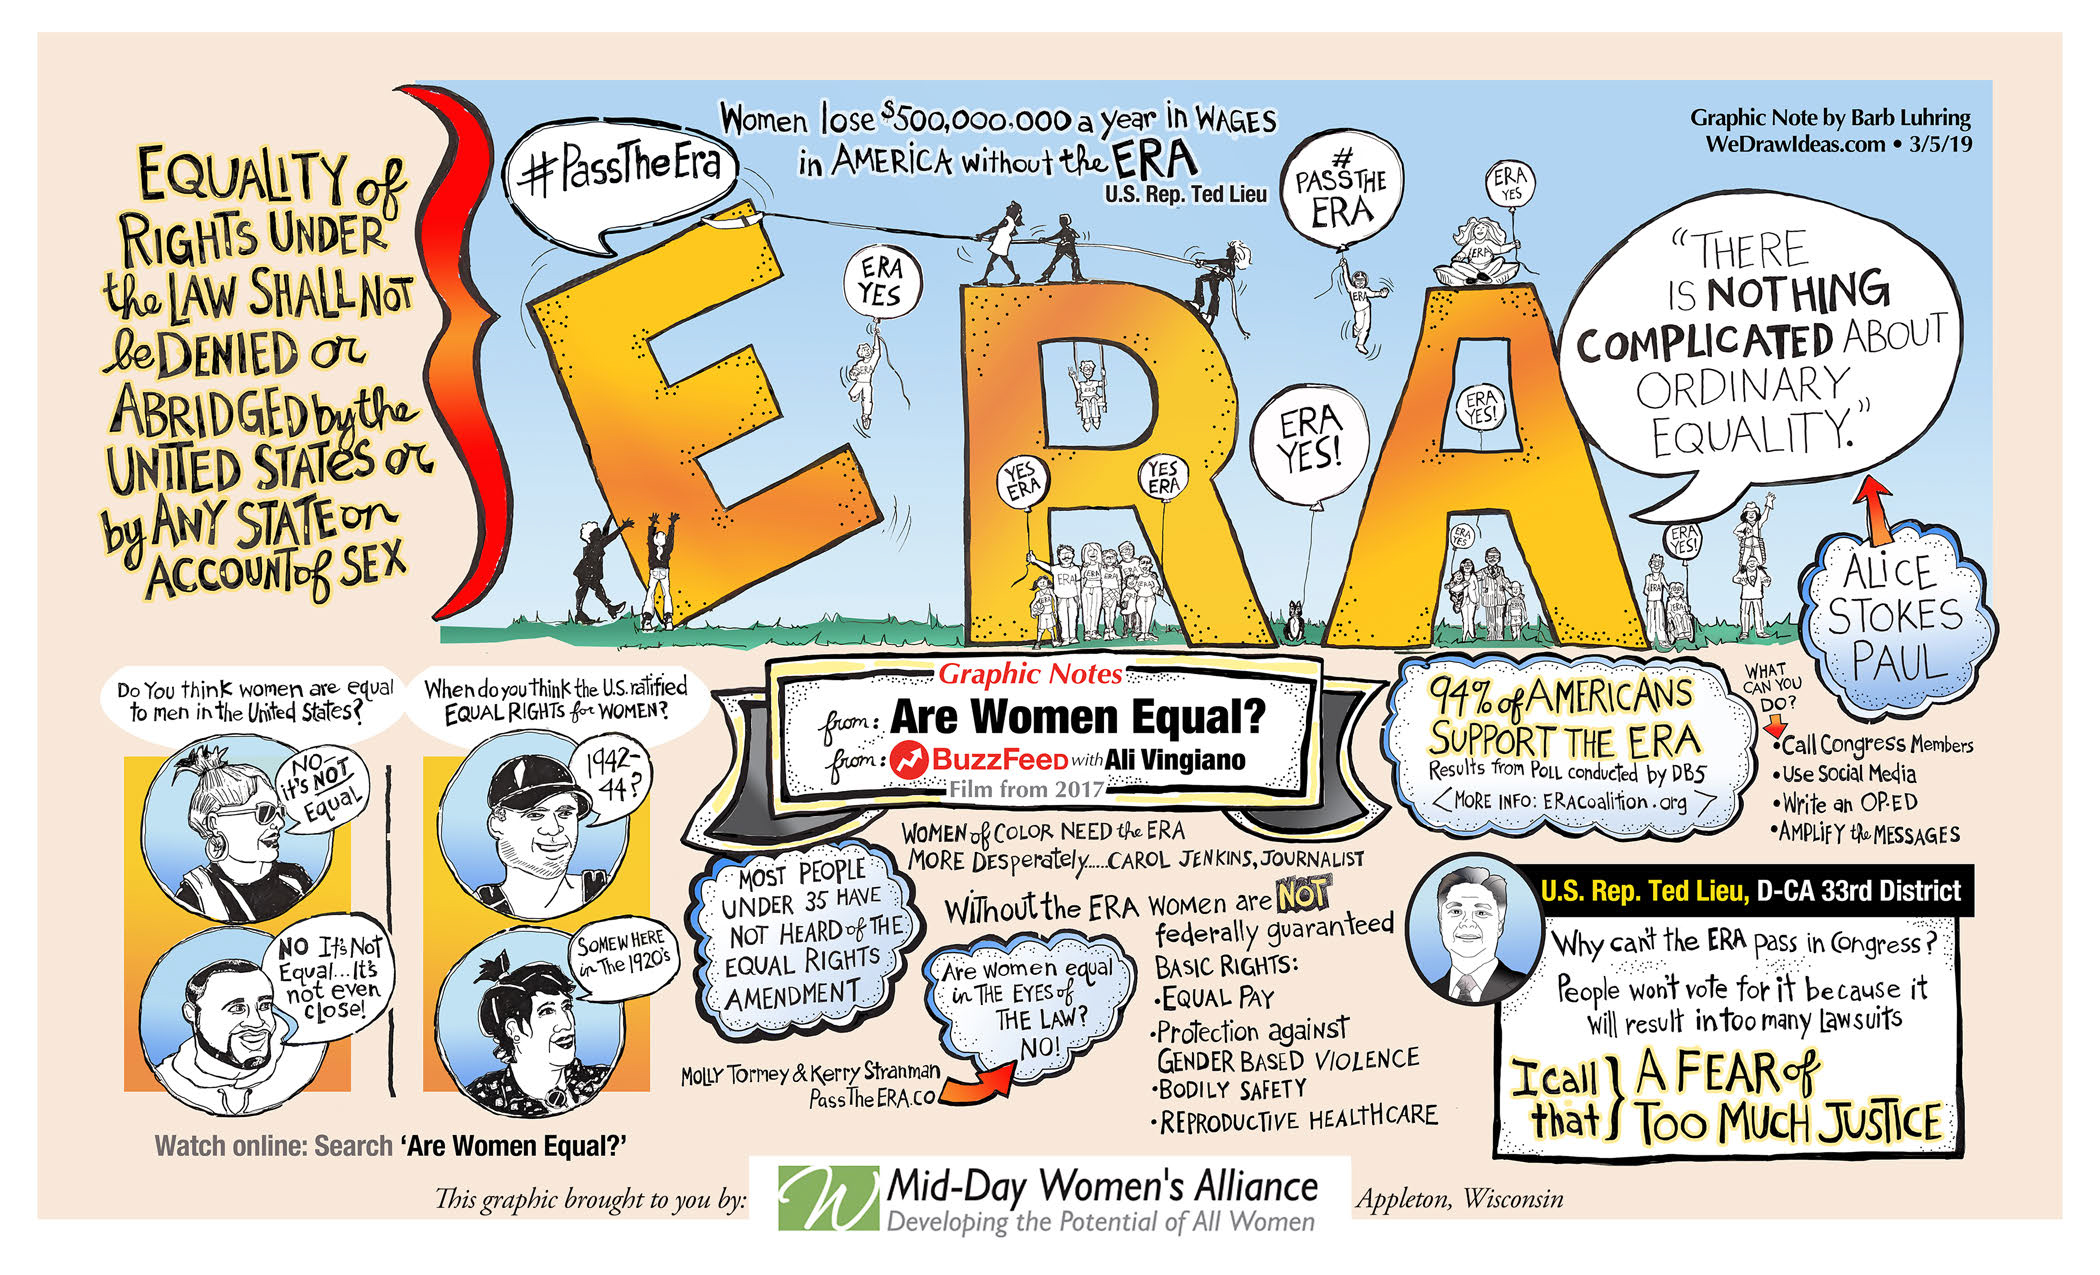 "Graphic Recording based on Buzzfeed Film ""Are Women Equal"" by Ali Vingiano"